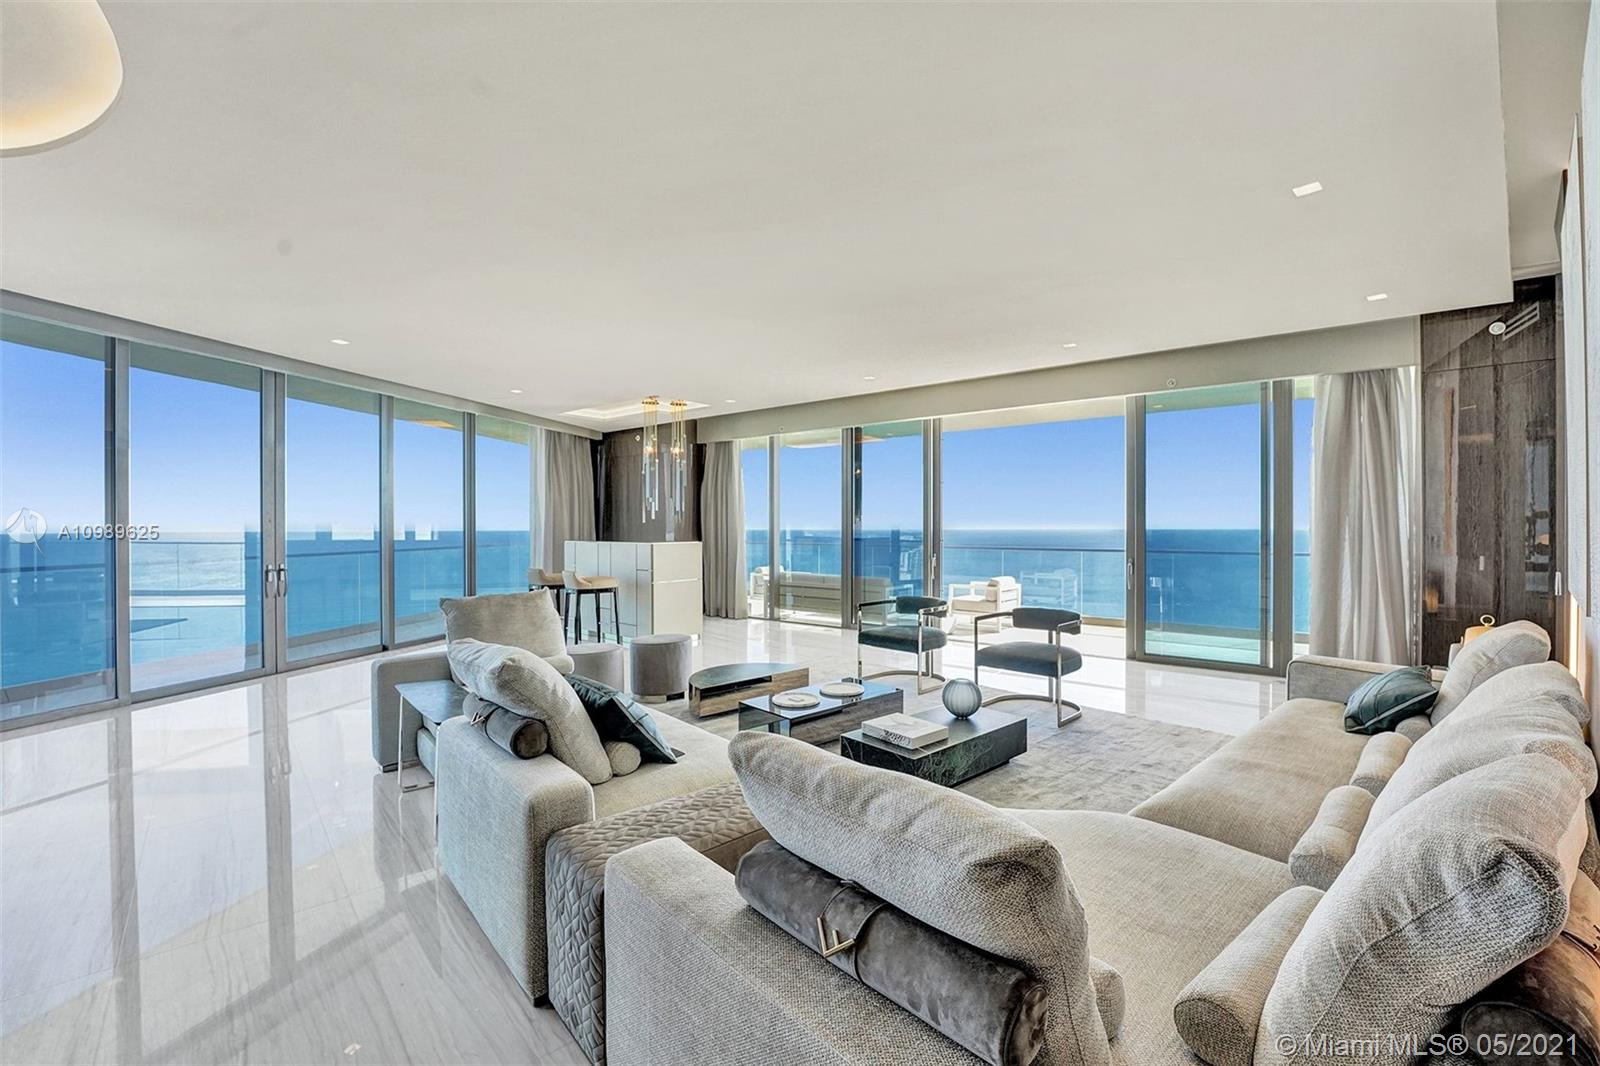 Welcome to Residences by Armani Casa. The most beautiful big corner unit and flow-through residence with unobstructed views to Ocean, City Views and Intracoastal. This residence features 4 bedroom /5.5 Bathrooms + service room masterfully distributed in 4083 sqft of living area, with wraparound terrace with floor to ceiling windows. Exquisitely finished with imported Italian Marble and decorated to detail, comes fully furnished with partial Fendi Furniture  with beautiful combination of textures and colors. Armani Casa Residences offers State-Of-The-Art Amenities: Restaurant, Bar, Pool, Business Center, Spa and Fitness Center,  Theater Room, Cigar and Wine Room, Children's play area, Security, Concierge + Valet Parking. This is a must see Unit, it will take your breath away.